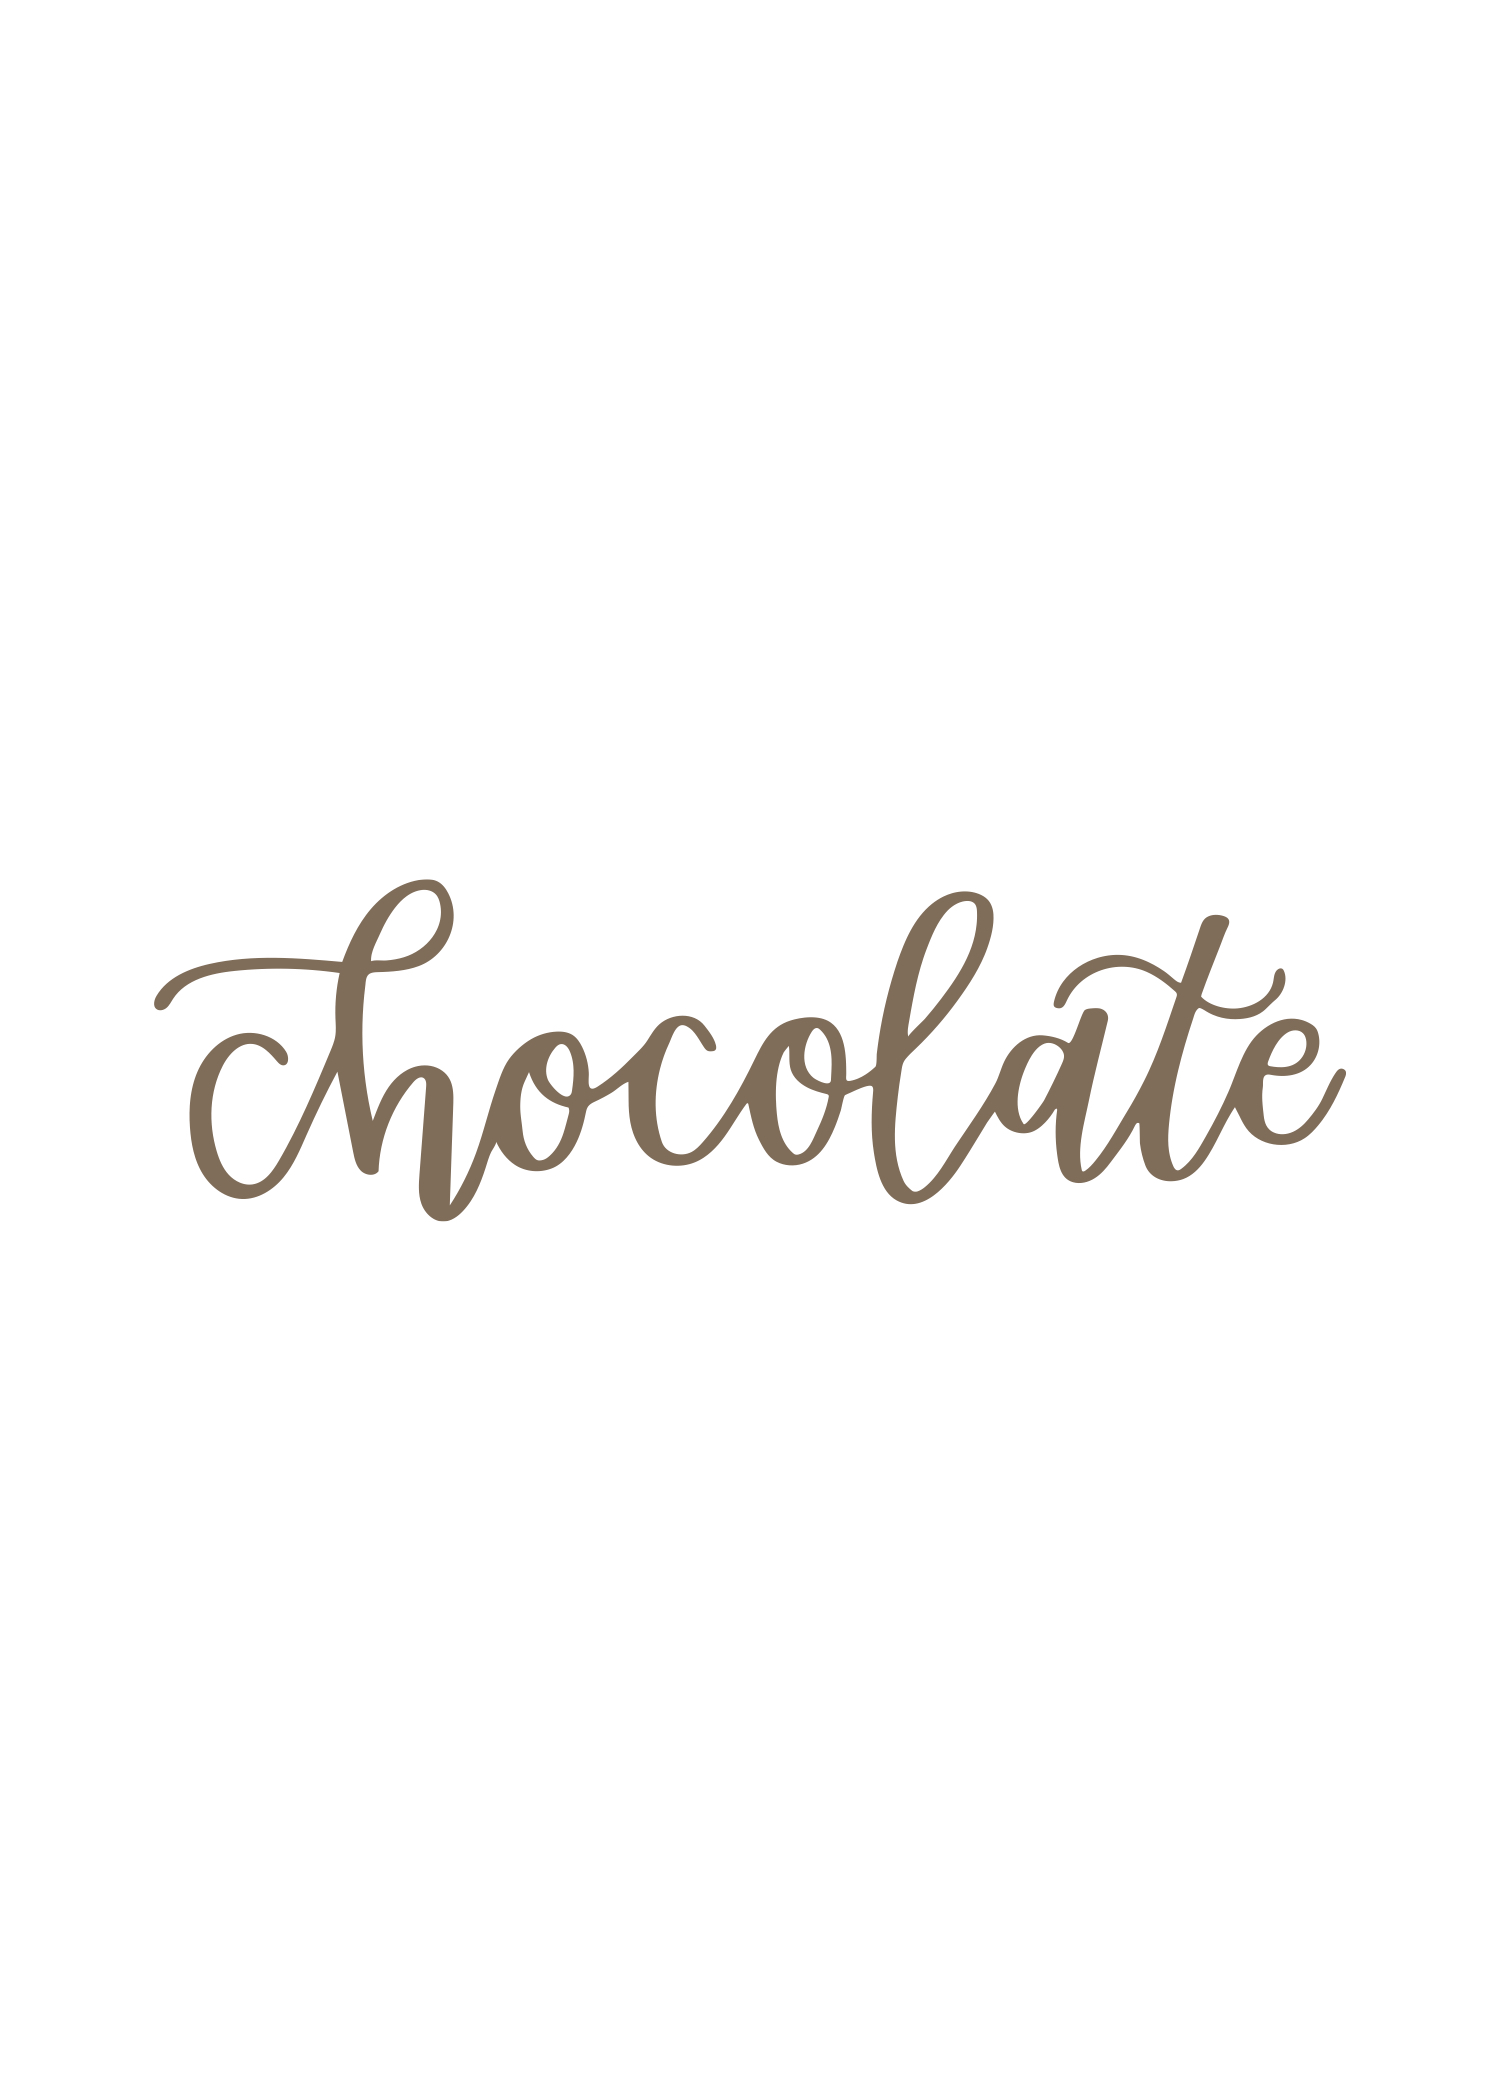 """chocolate"" calligraphy"